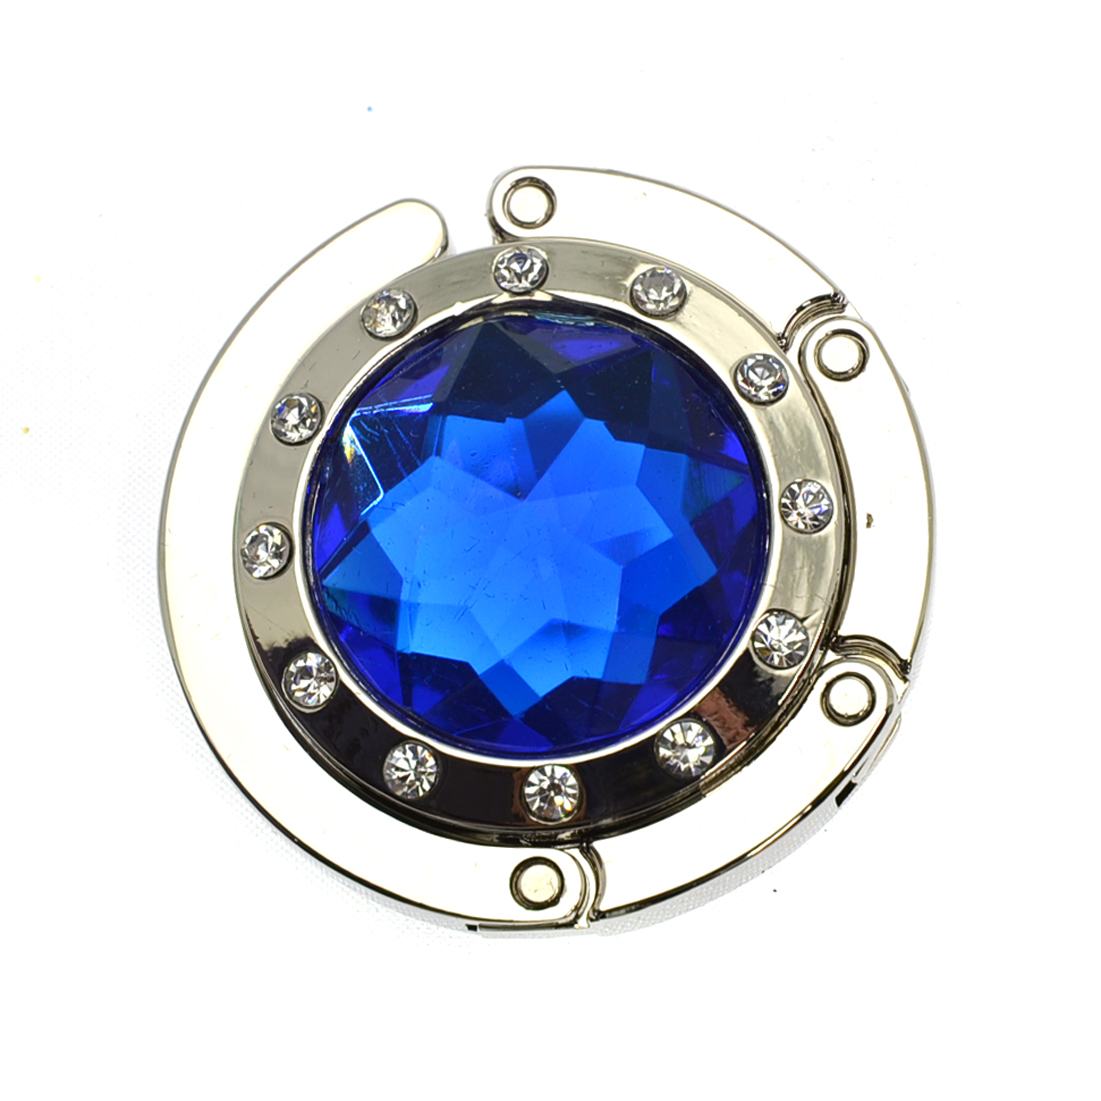 Textured Metal Diamond Shape Handbag Bag Purse Hanger Table Hook  Blue